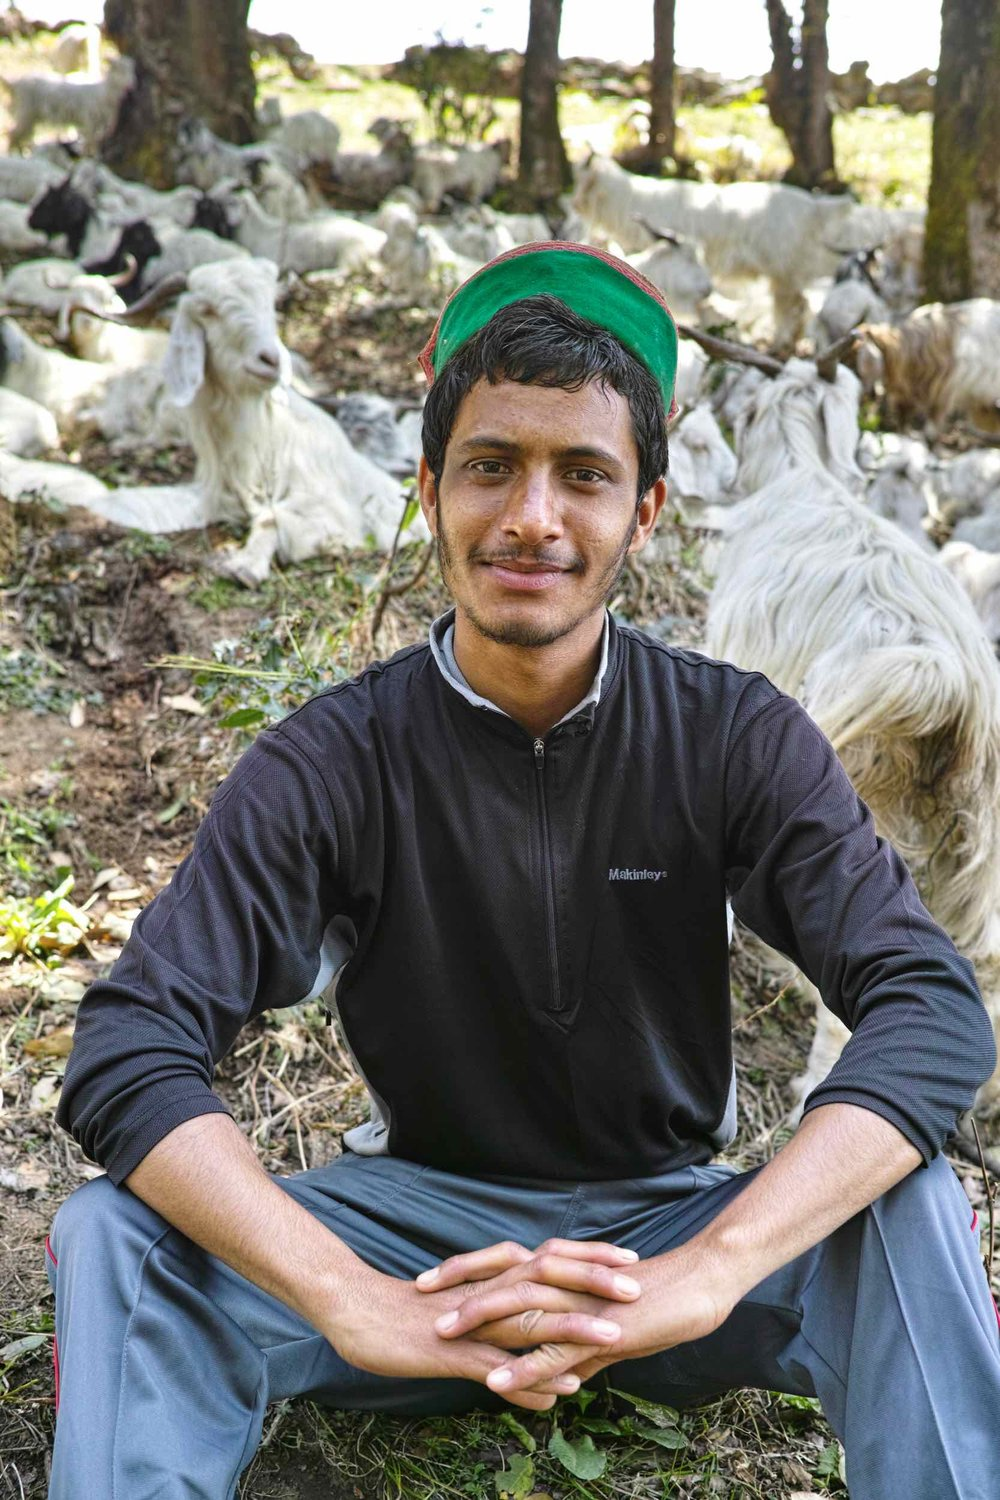 Amit Chauhan, an aspiring soldier and a Nag Tibba expert par excellence. His knowledge about the flora and fauna at Nag Tibba is phenomenal.